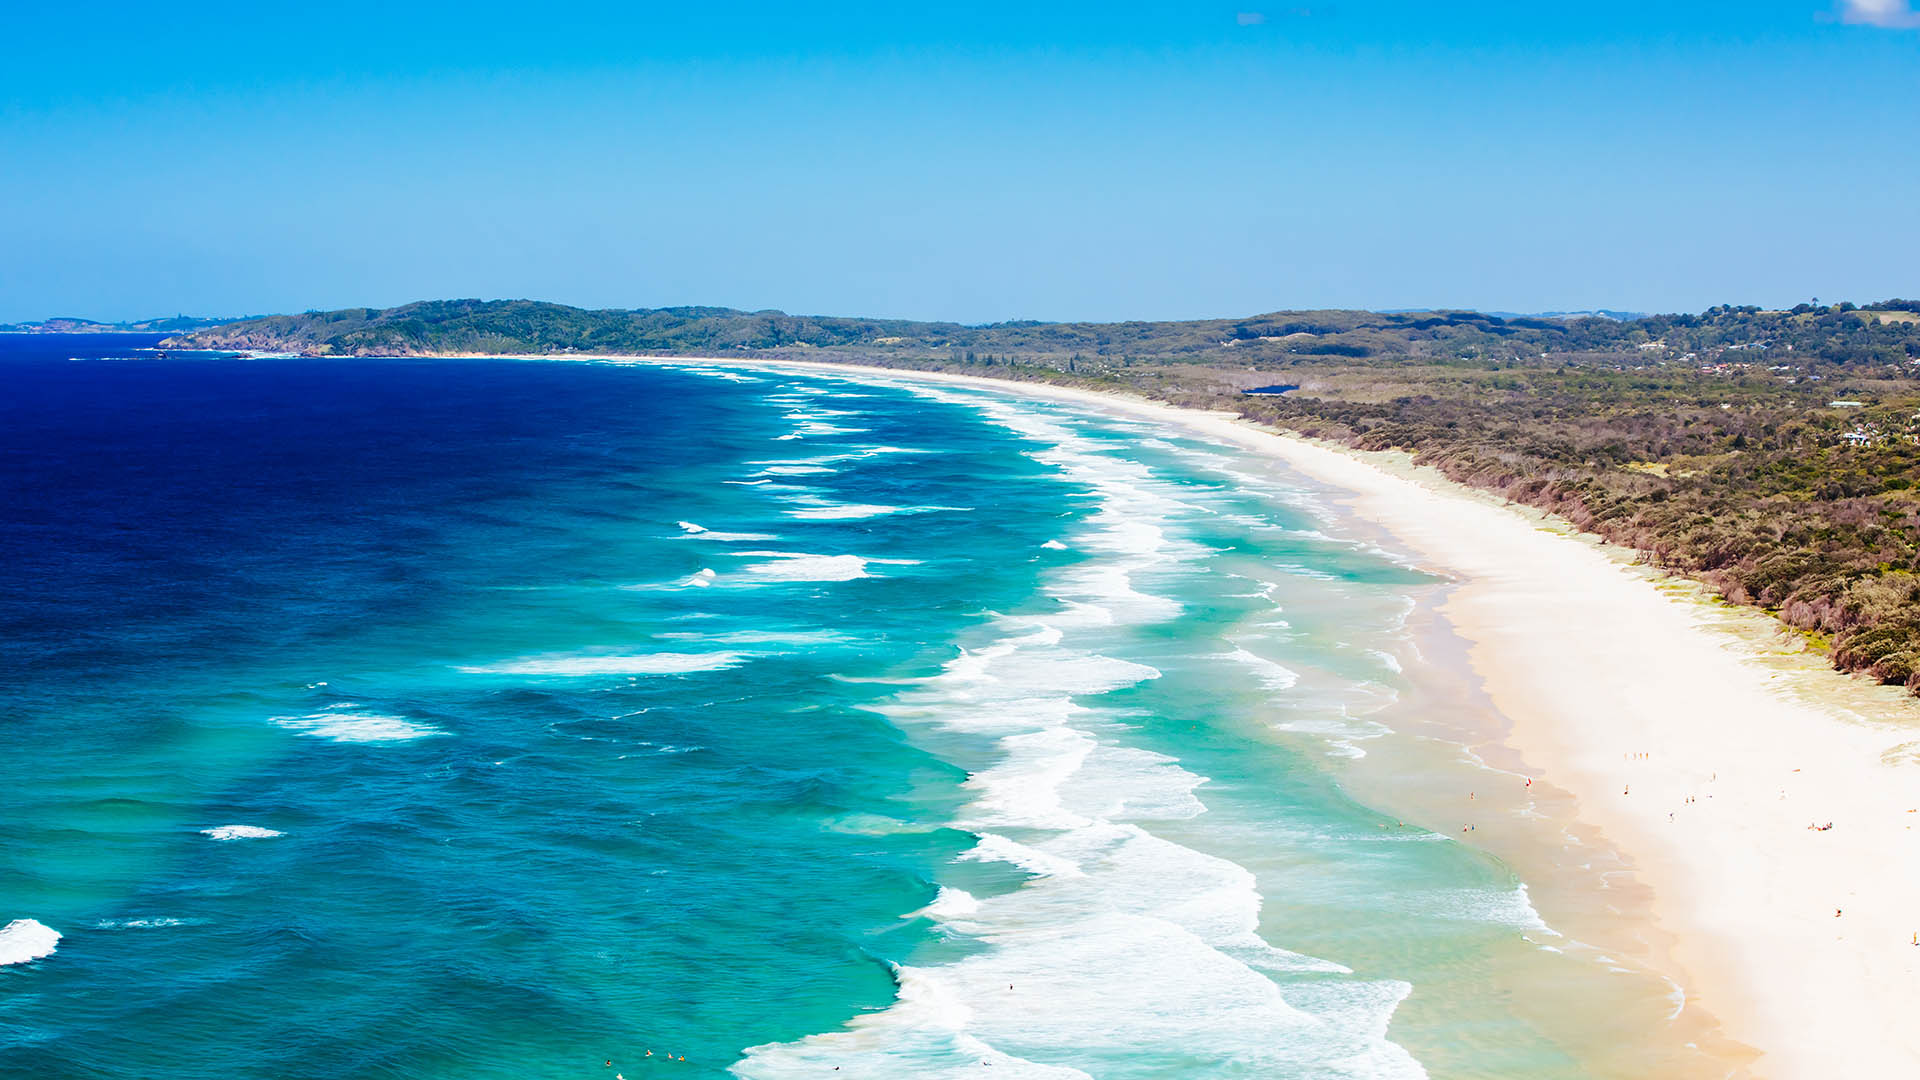 A famous view from Lighthouse Rd over Tallows Beach and Cape Byron in Byron Bay, New South Wales, Australia